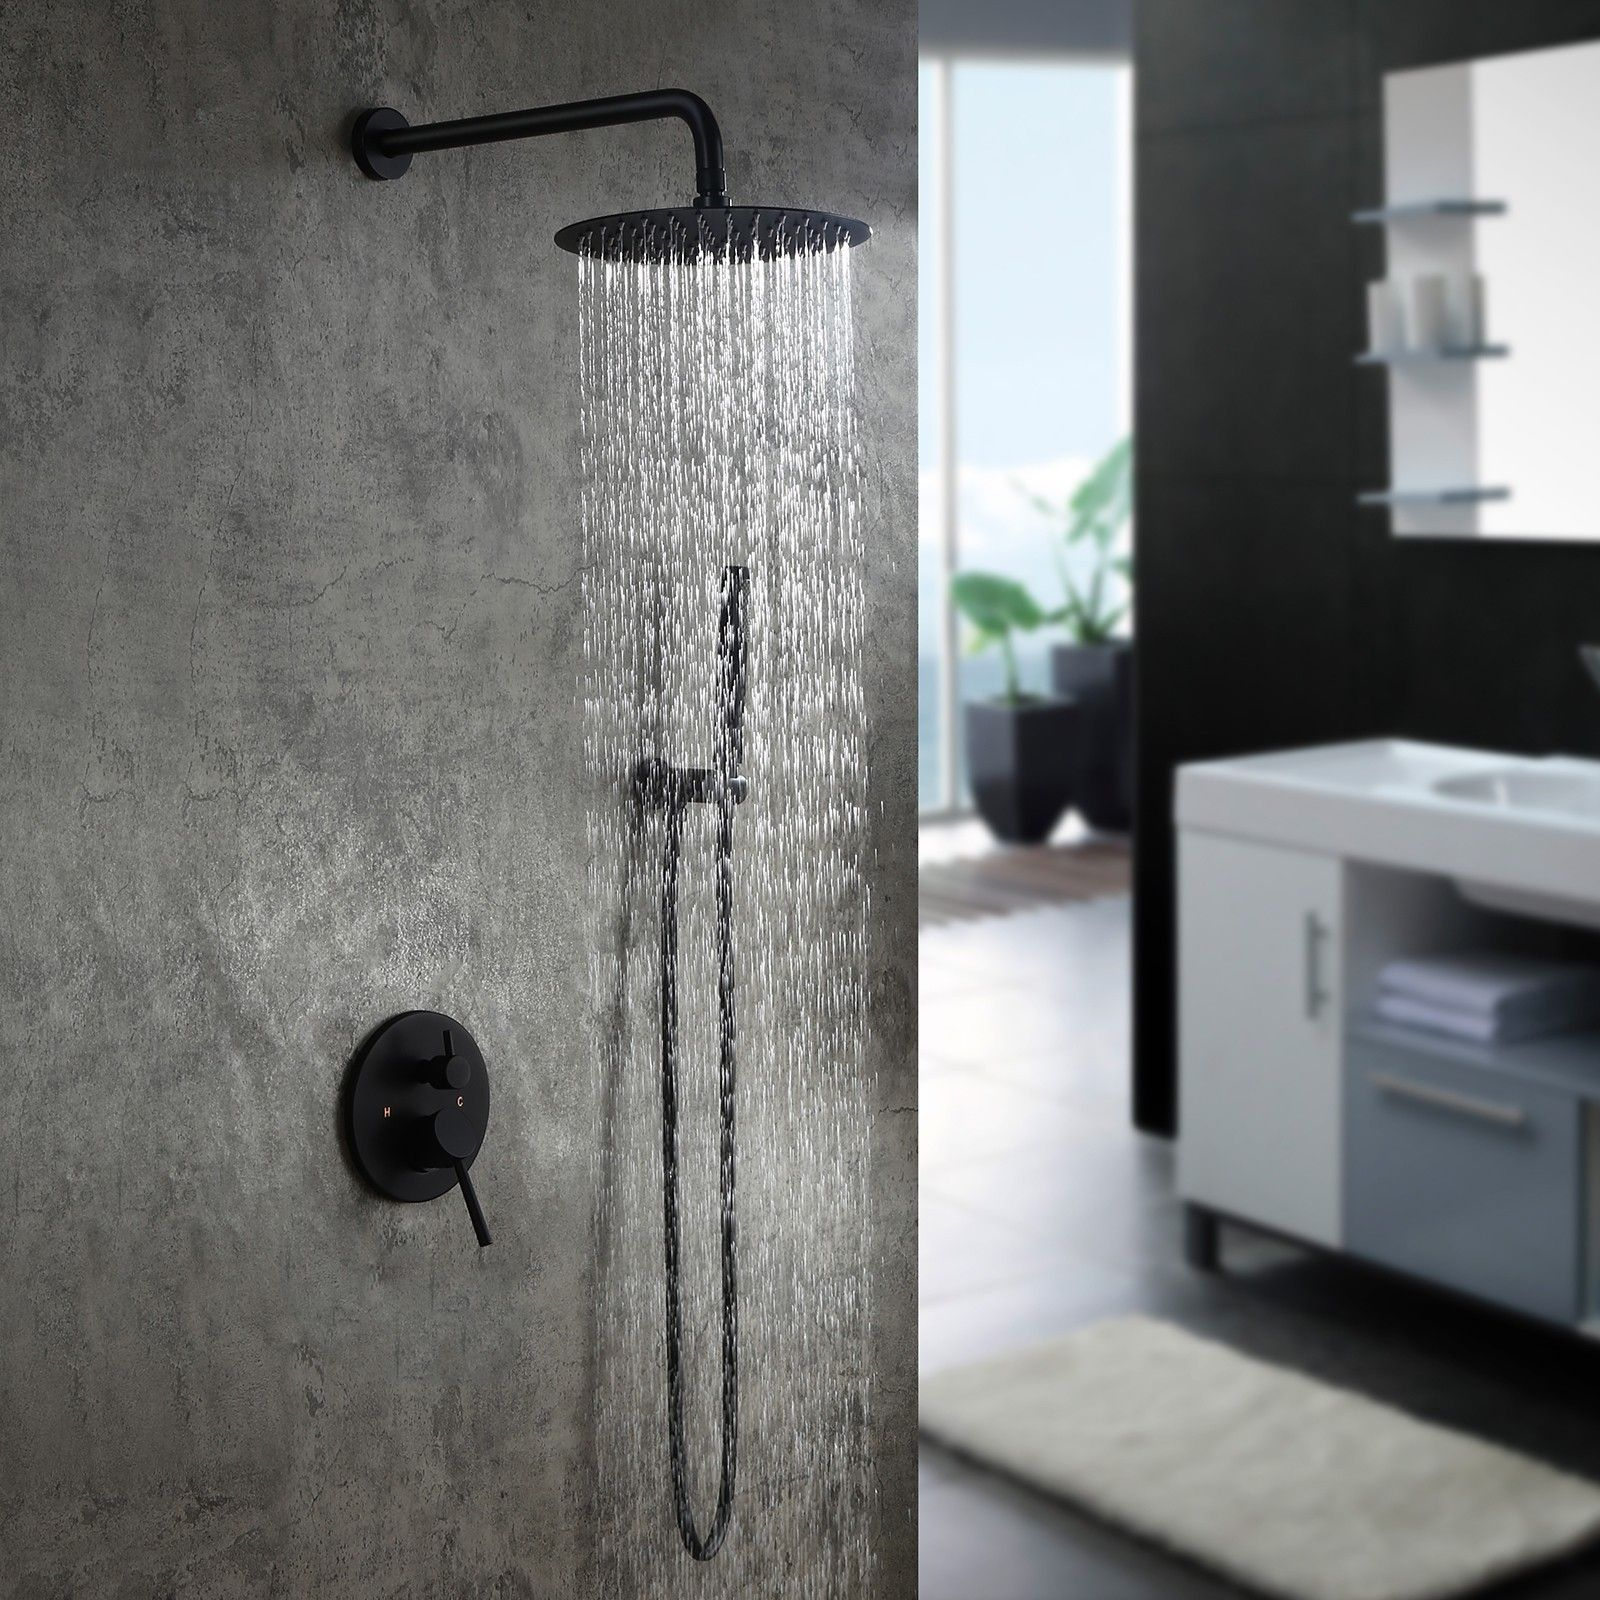 Modern Matte Black Wall Mounted Rain Shower System With Round Rainfall Shower Head Handheld Shower Set Solid Brass Cupc Certificated In 2020 Rain Shower System Shower Systems Wall Mount Rain Shower